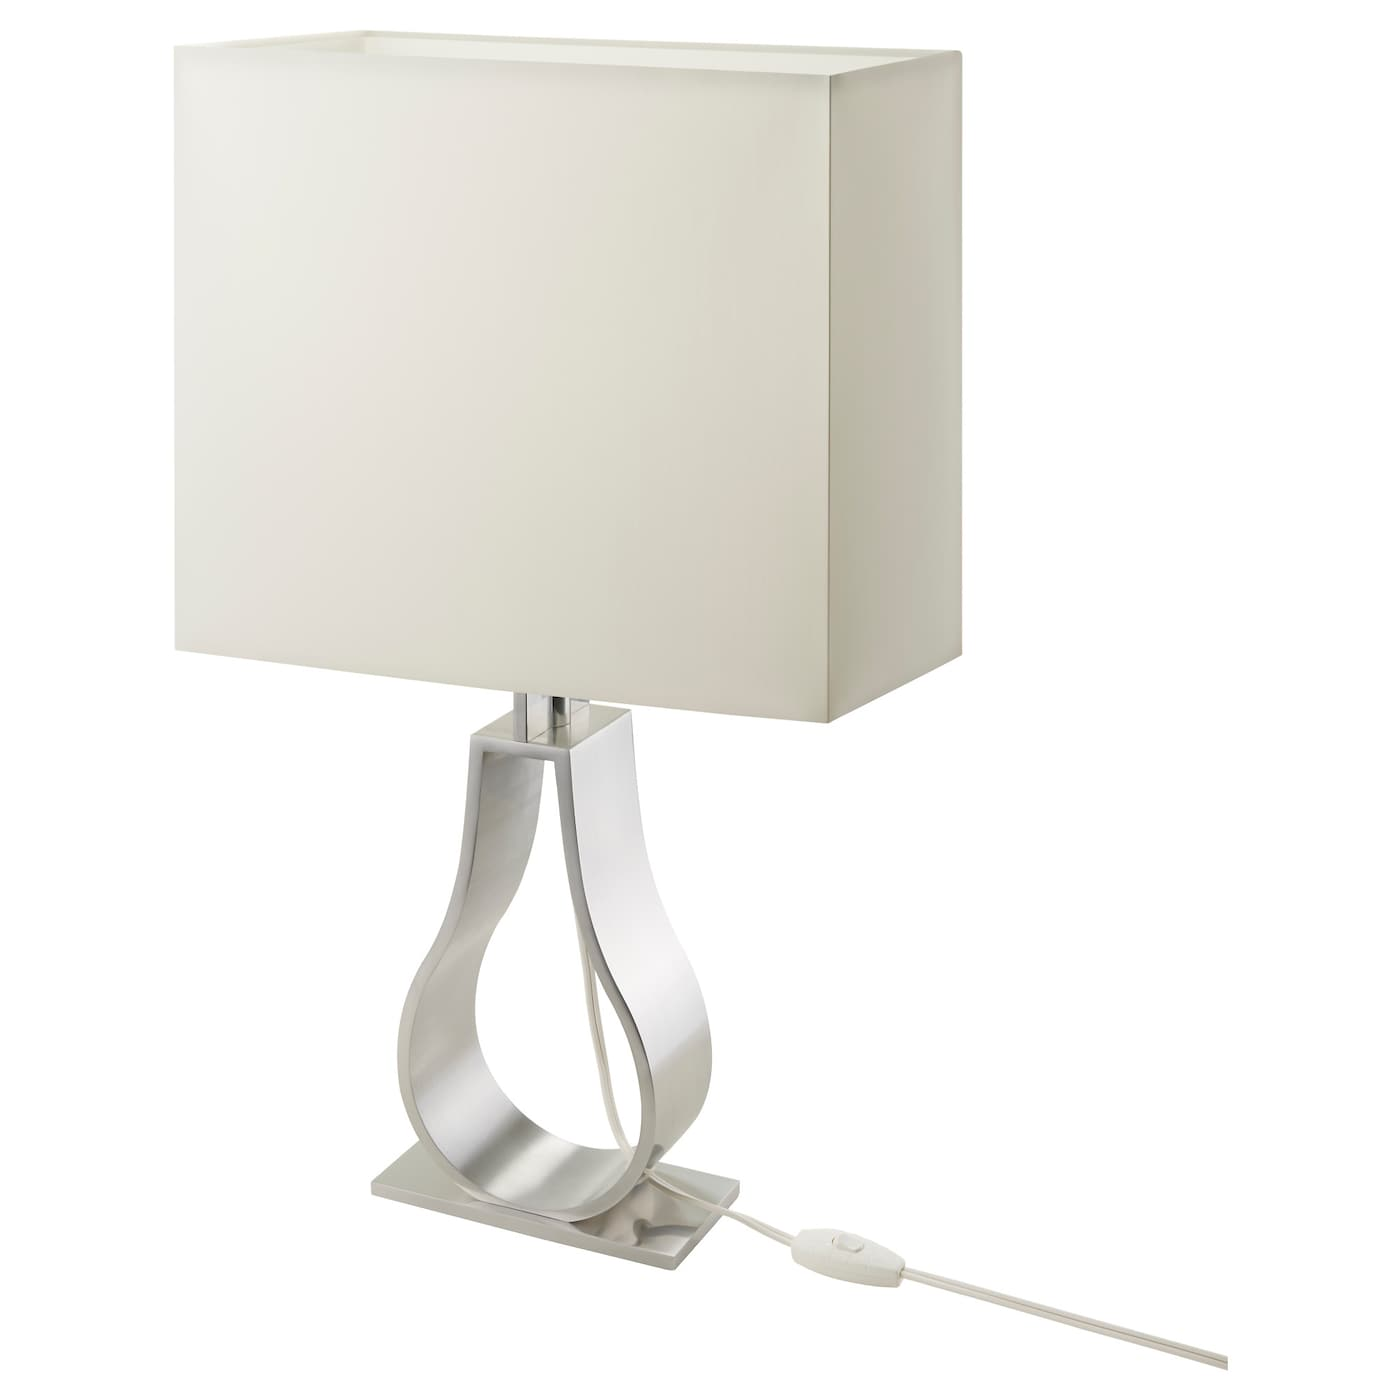 klabb lampe de table blanc cass nickel 60 cm ikea. Black Bedroom Furniture Sets. Home Design Ideas